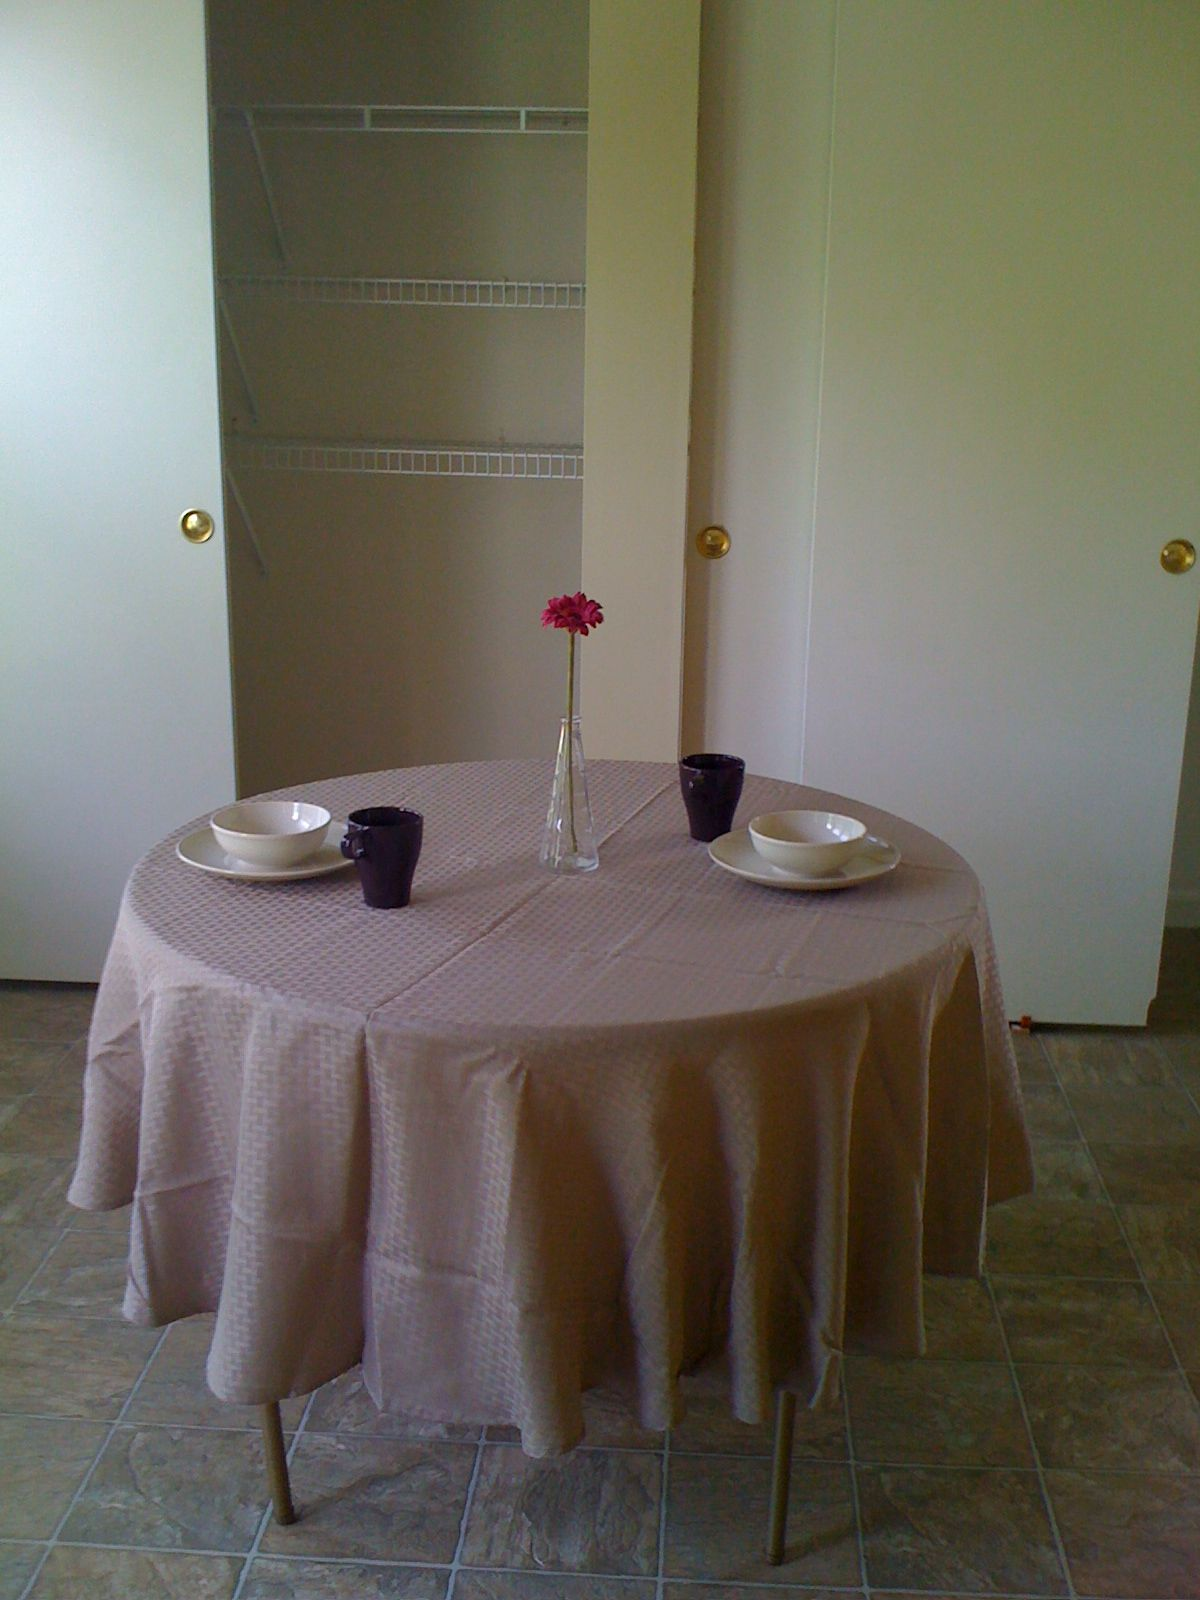 Table for 2? Better than an empty space. Total cost $23 w/ a borrowed folding table.